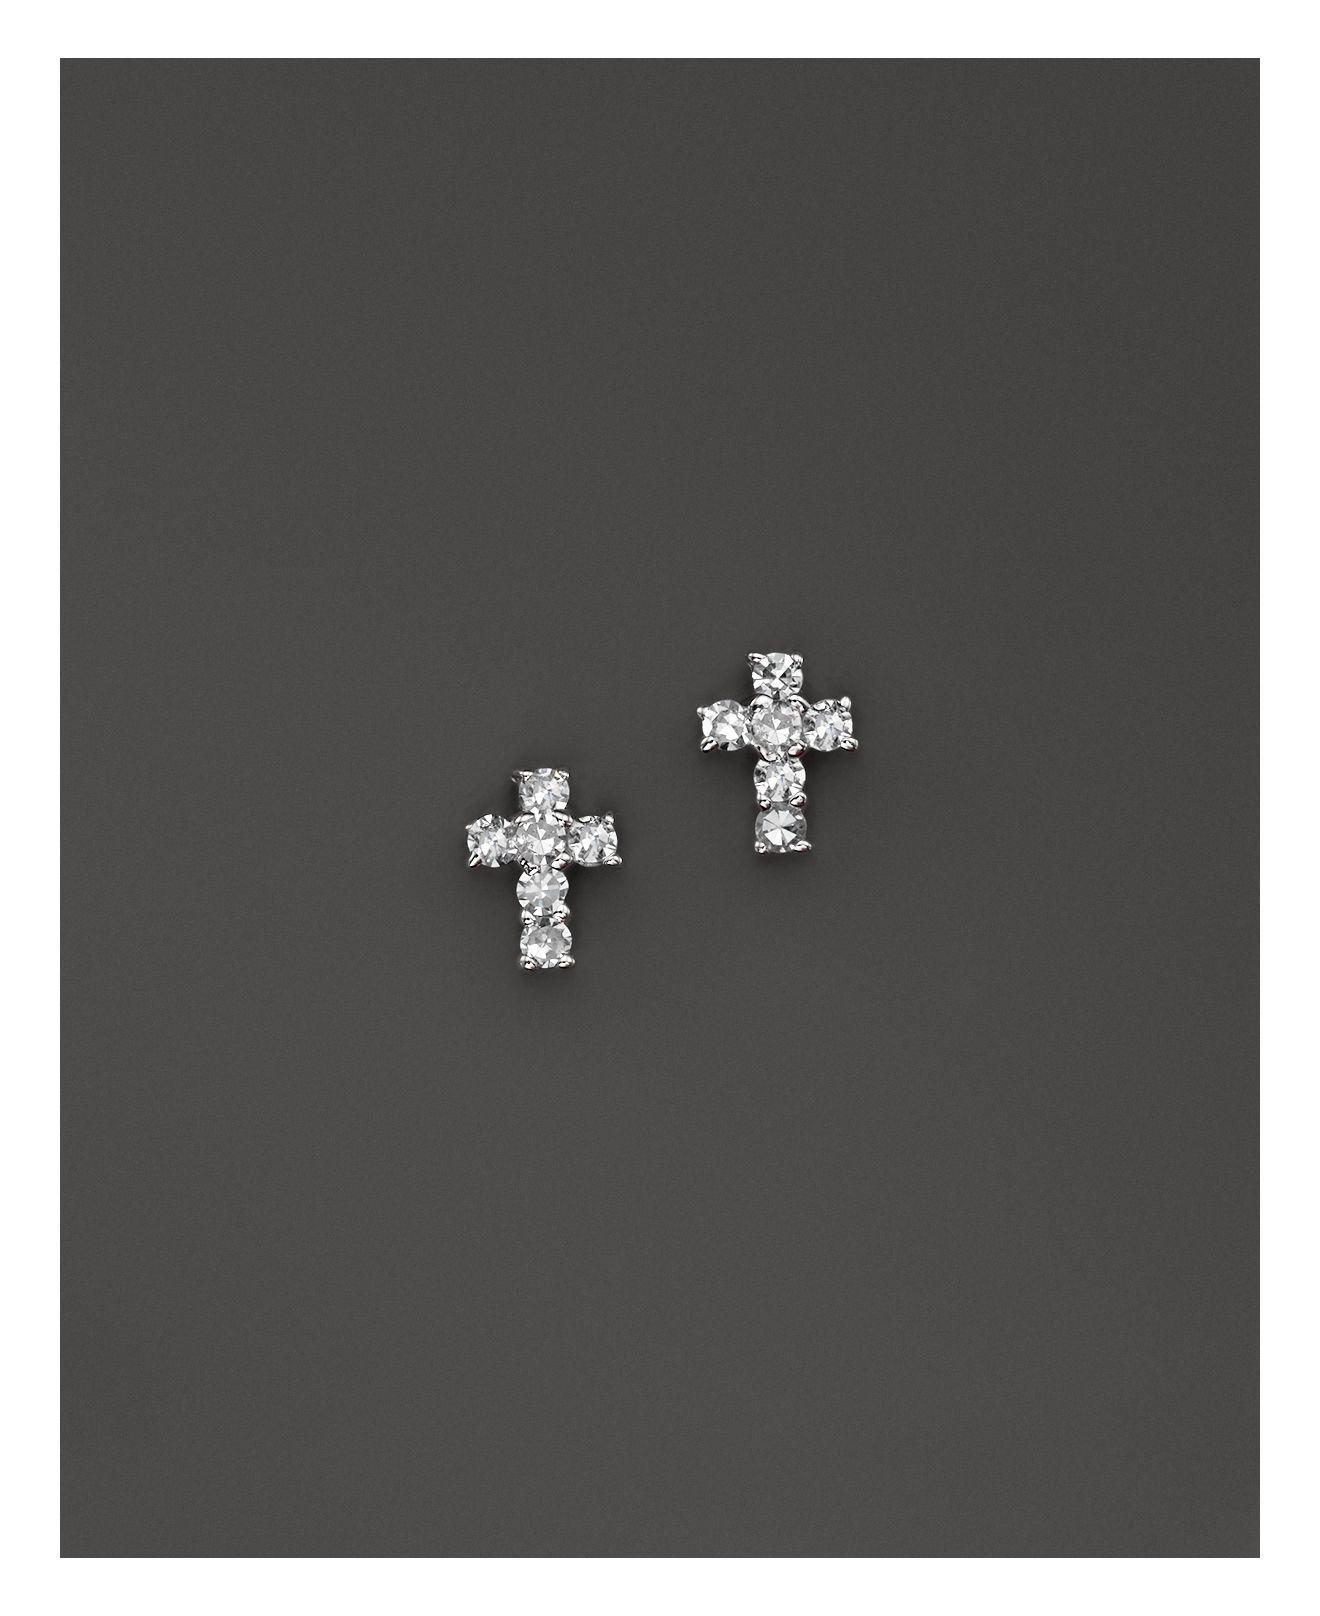 ml sterling cross silver earrings studs bling crucifix stud micropave az small little jewelry